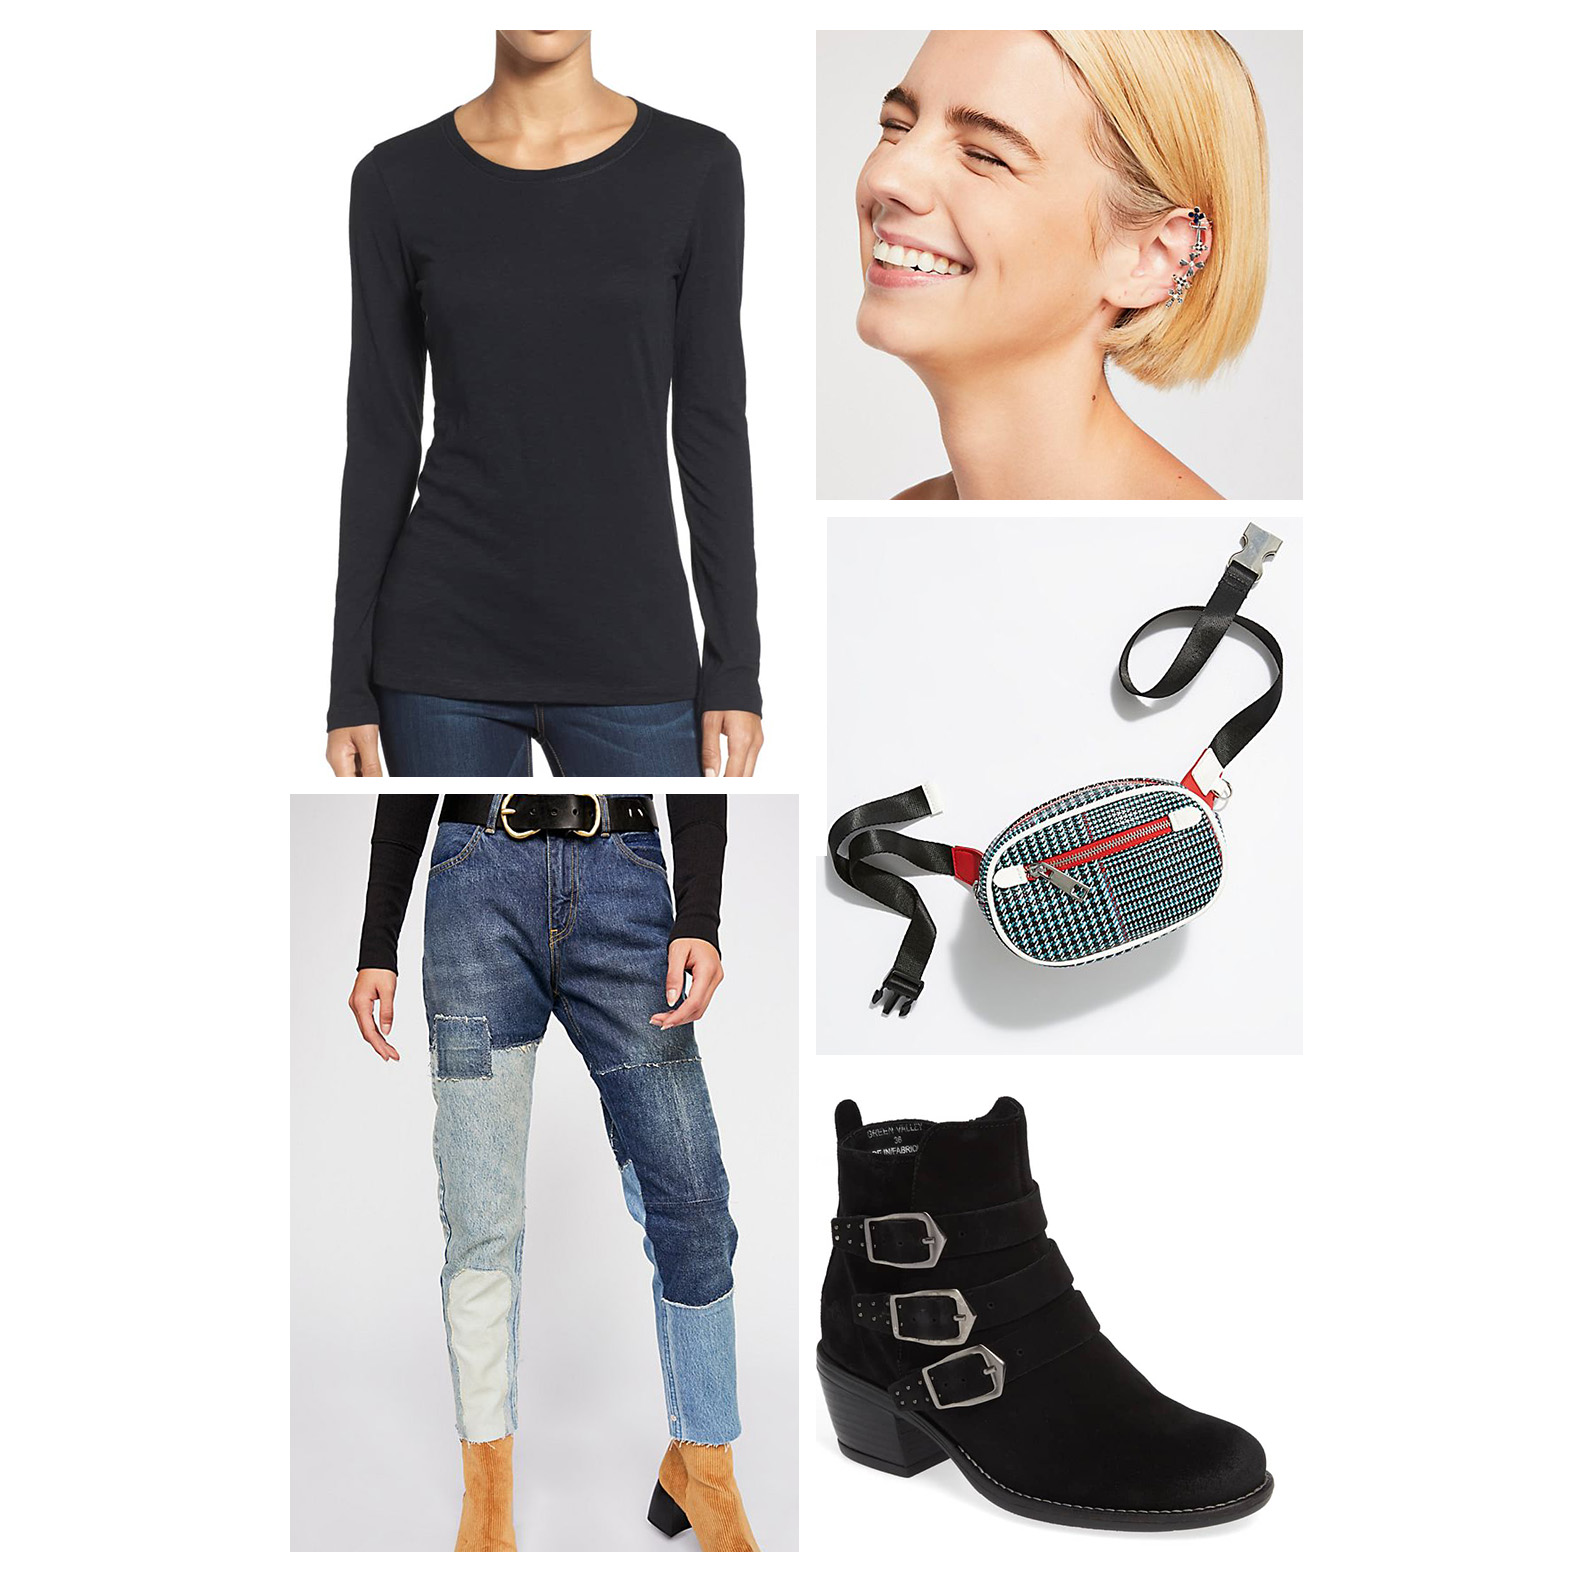 fall-autumn-outfit-weekend-2018-fashion-ideas-boyfriend-jeans-patchwork-black-booties-houndstooth-belt-bag-tee-studs-earrings-casual.jpg